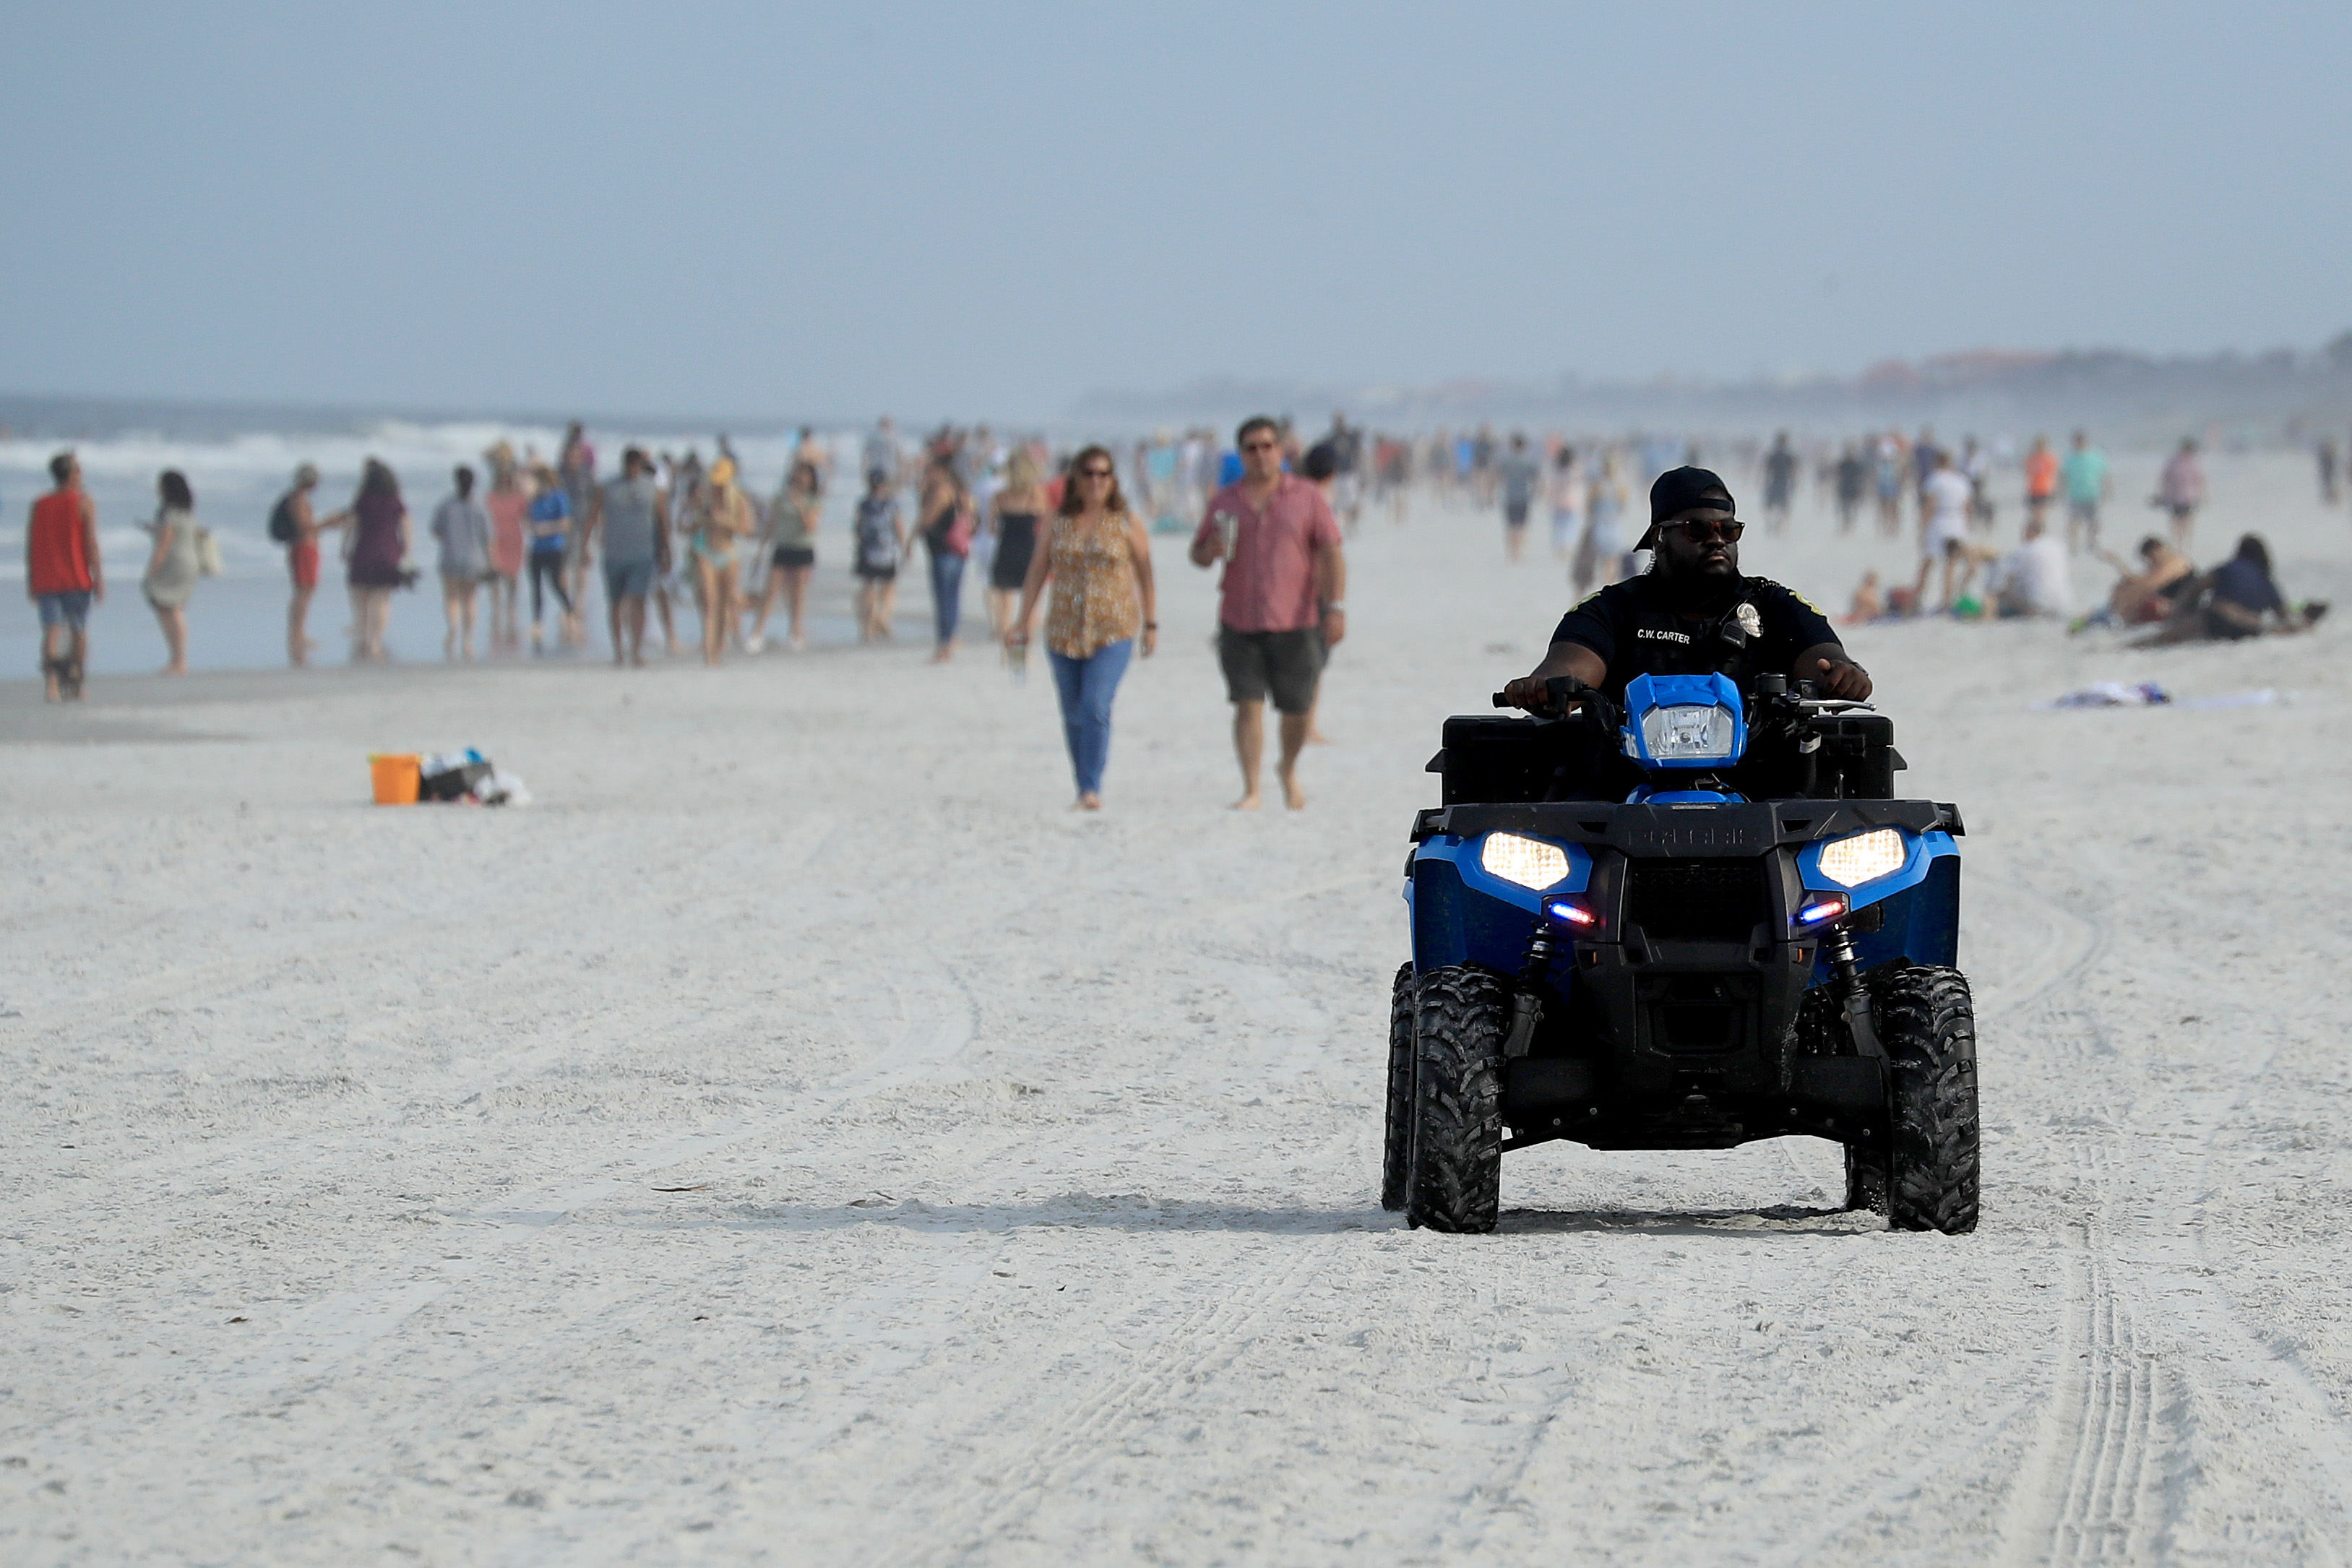 A policeman drives along the beach in Jacksonville Beach, Florida, on April 19.